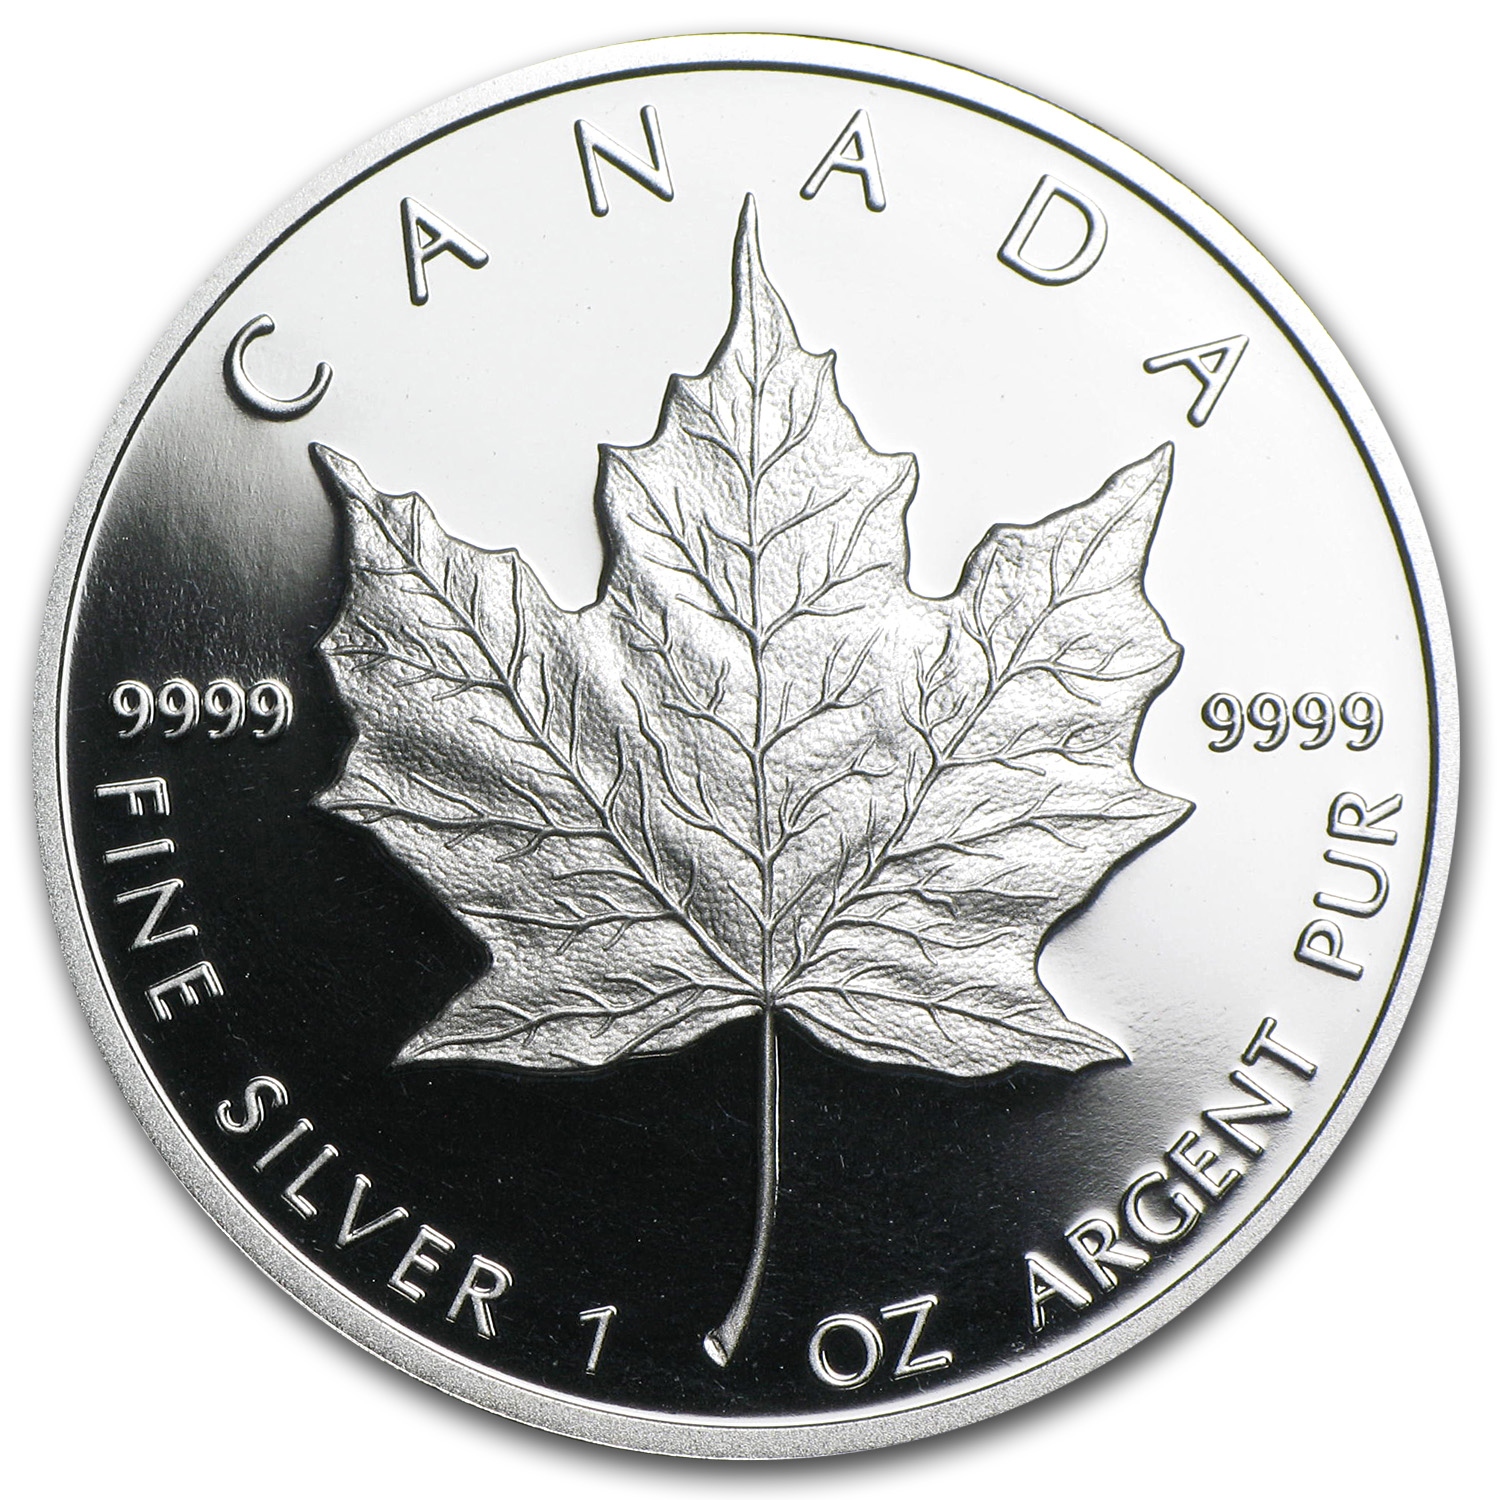 1989 1 oz Proof Silver Canadian Maple Leaf (W/Box & CoA)